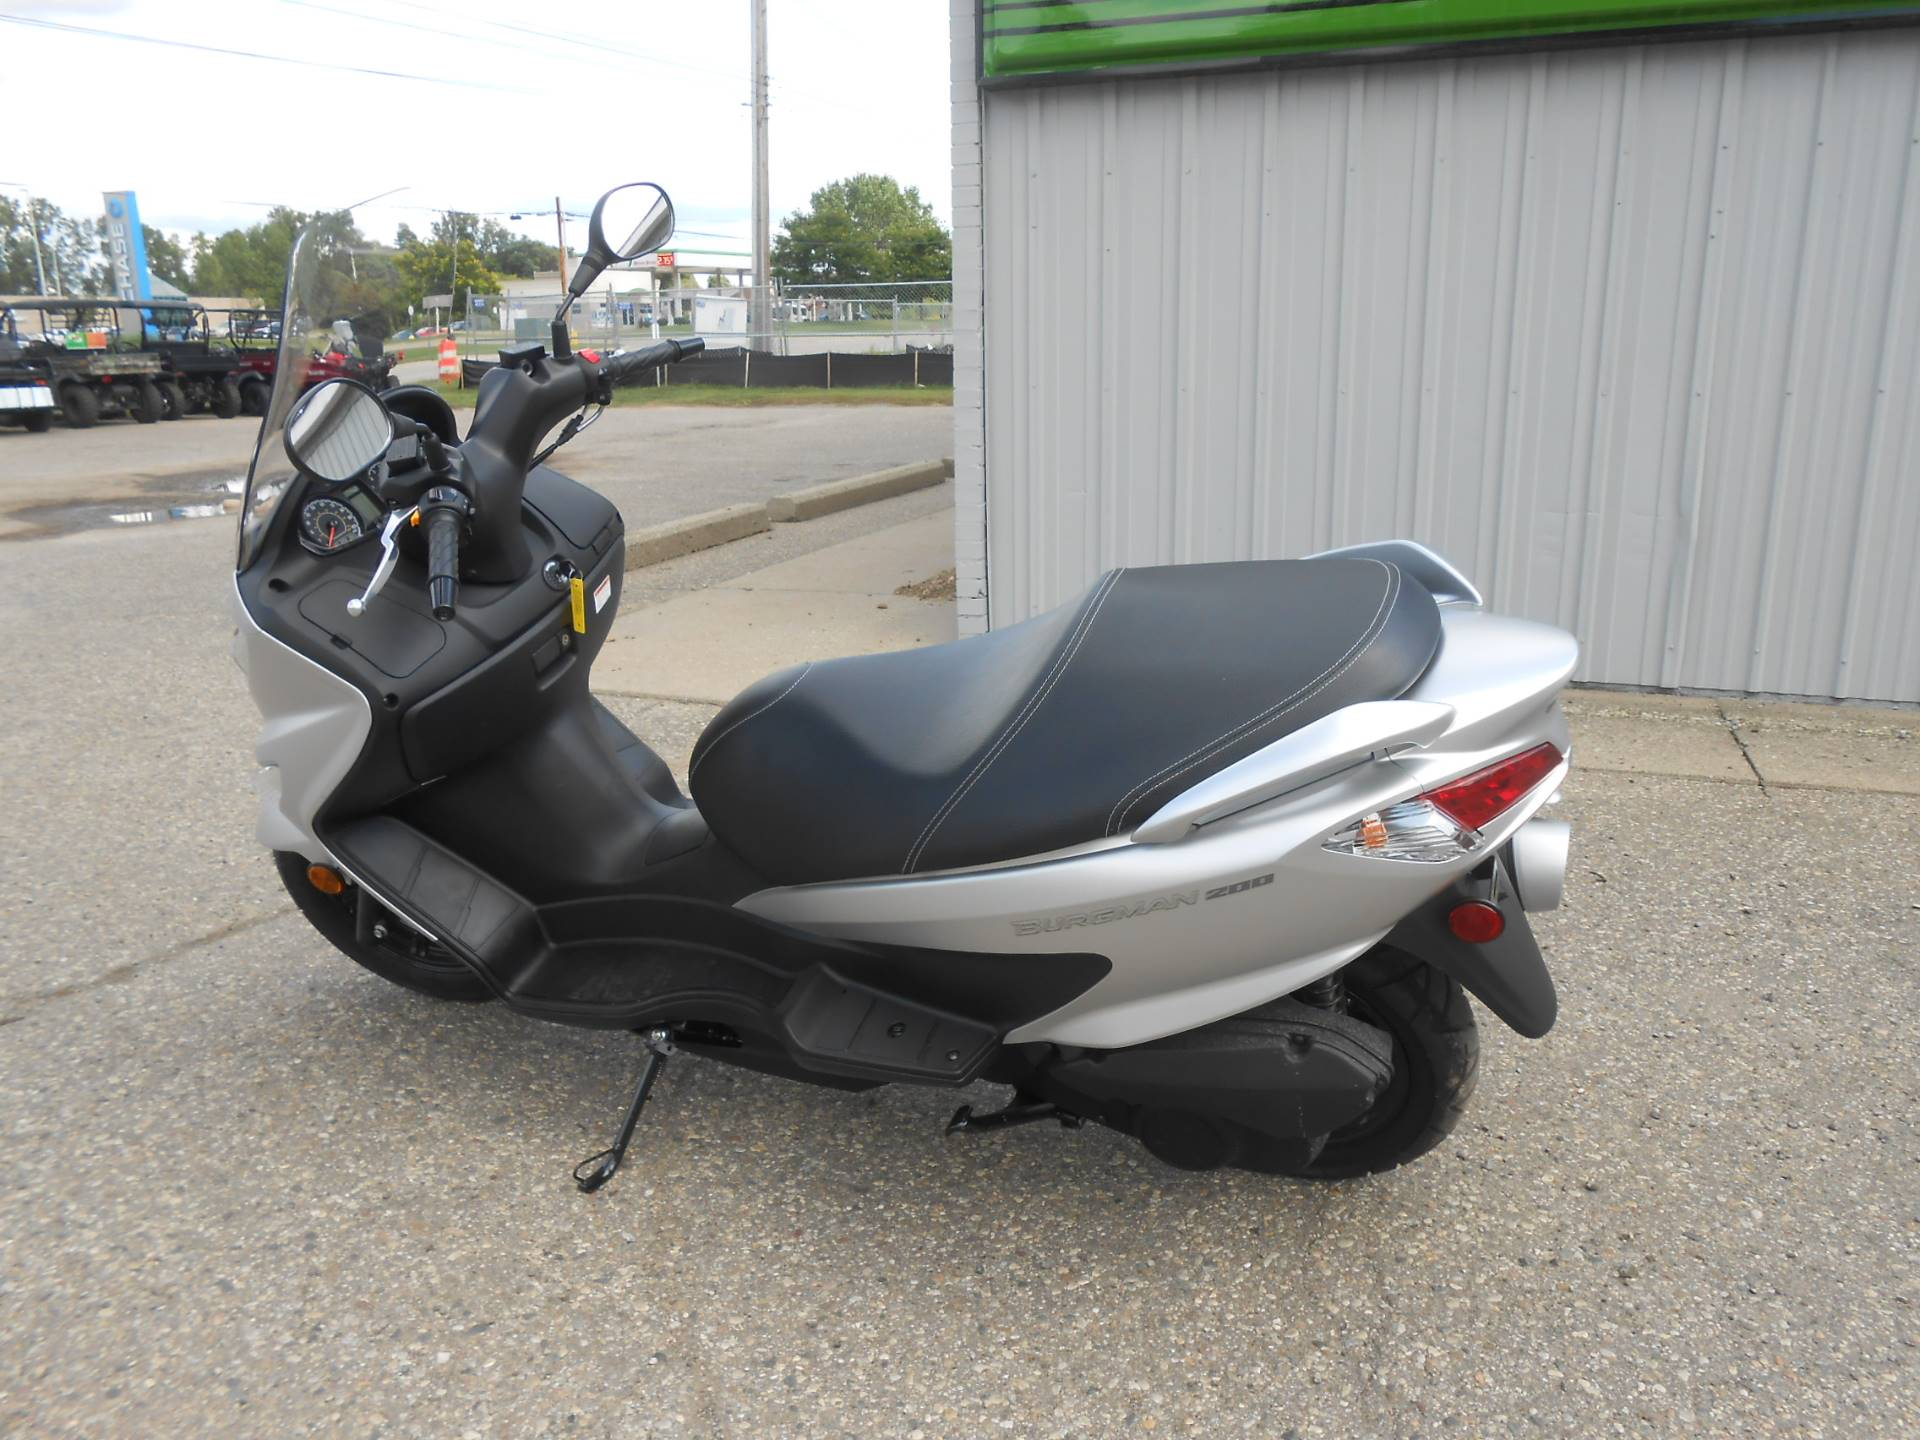 2018 Suzuki Burgman 200 in Howell, Michigan - Photo 3